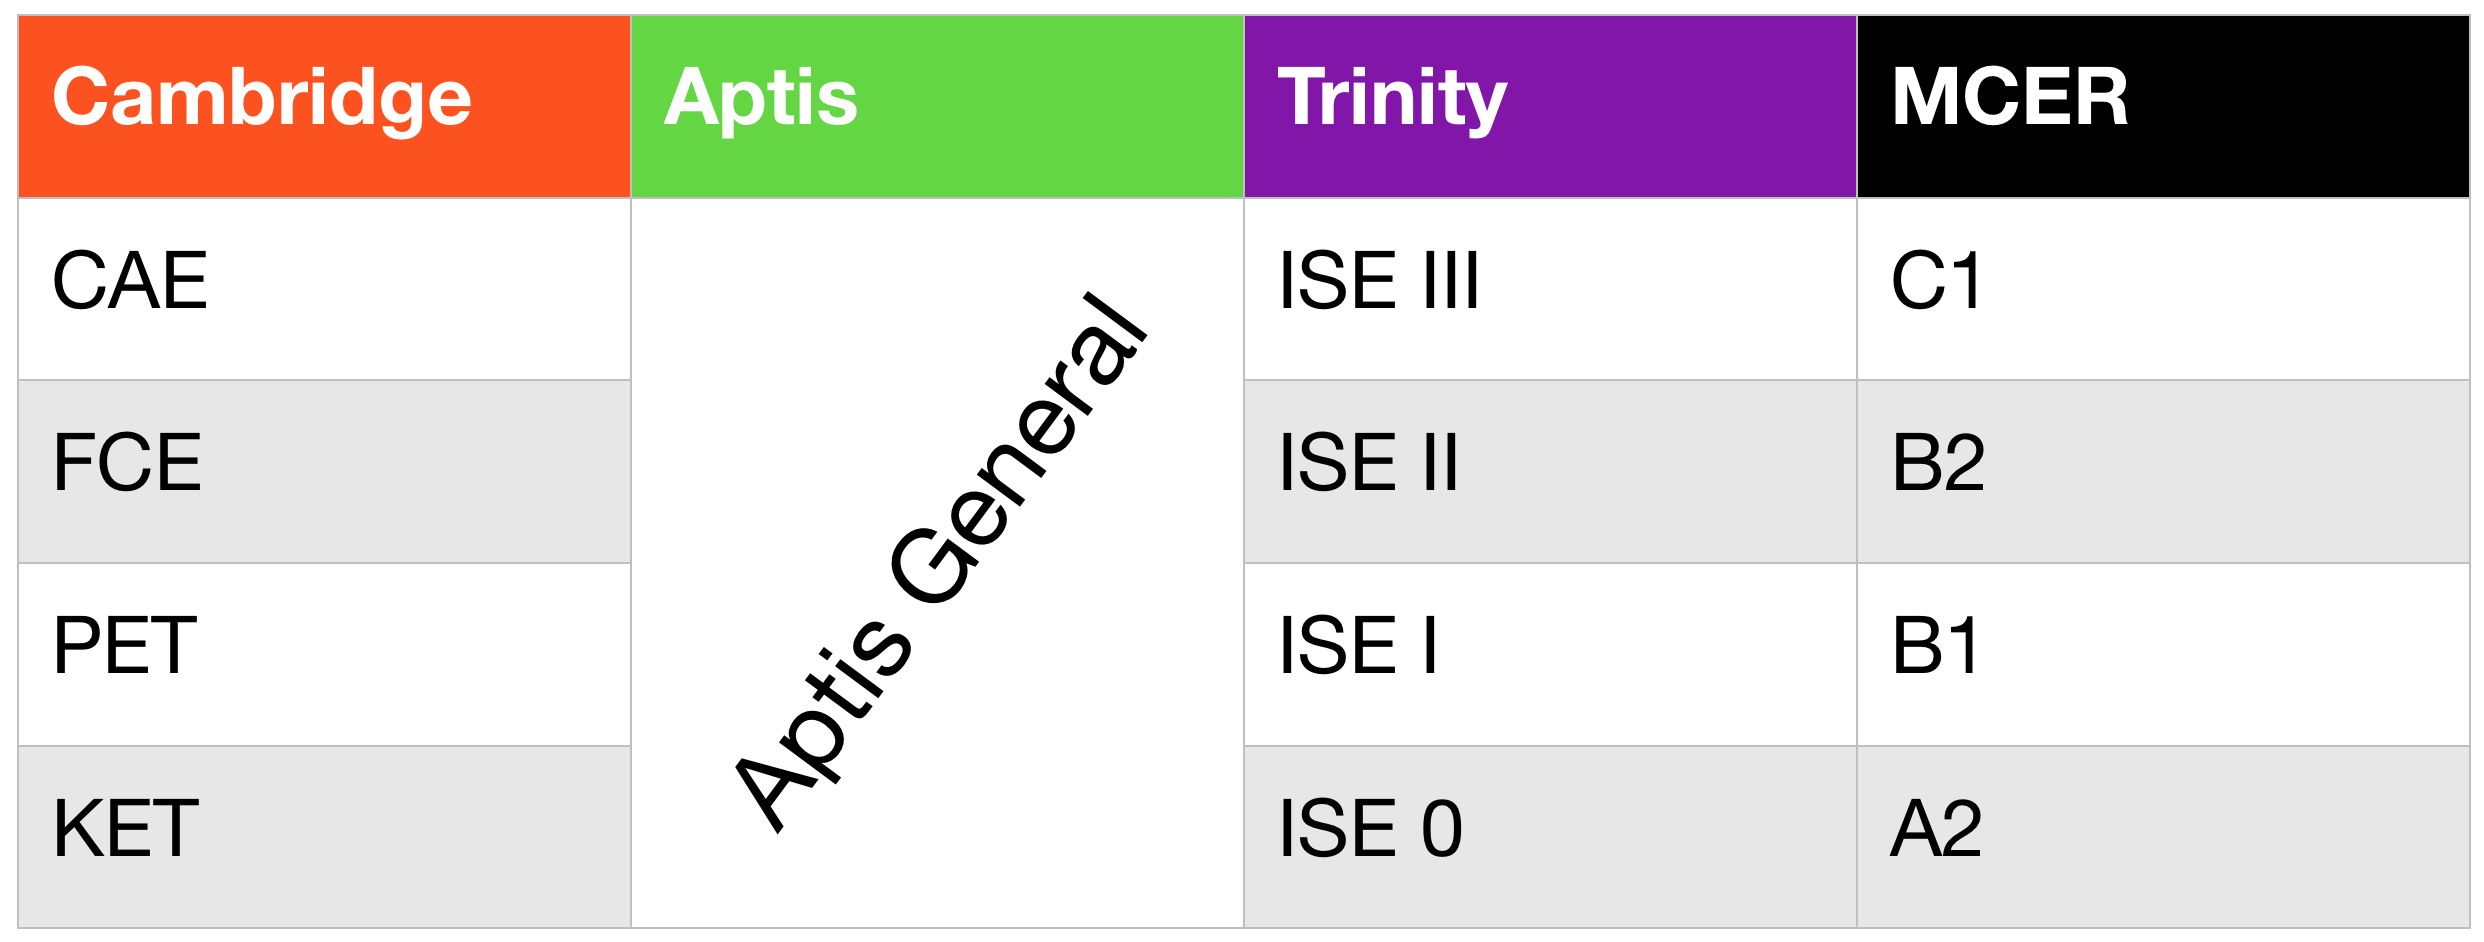 Tabla con los niveles equivalentes de aptis general, cambridge y trinity